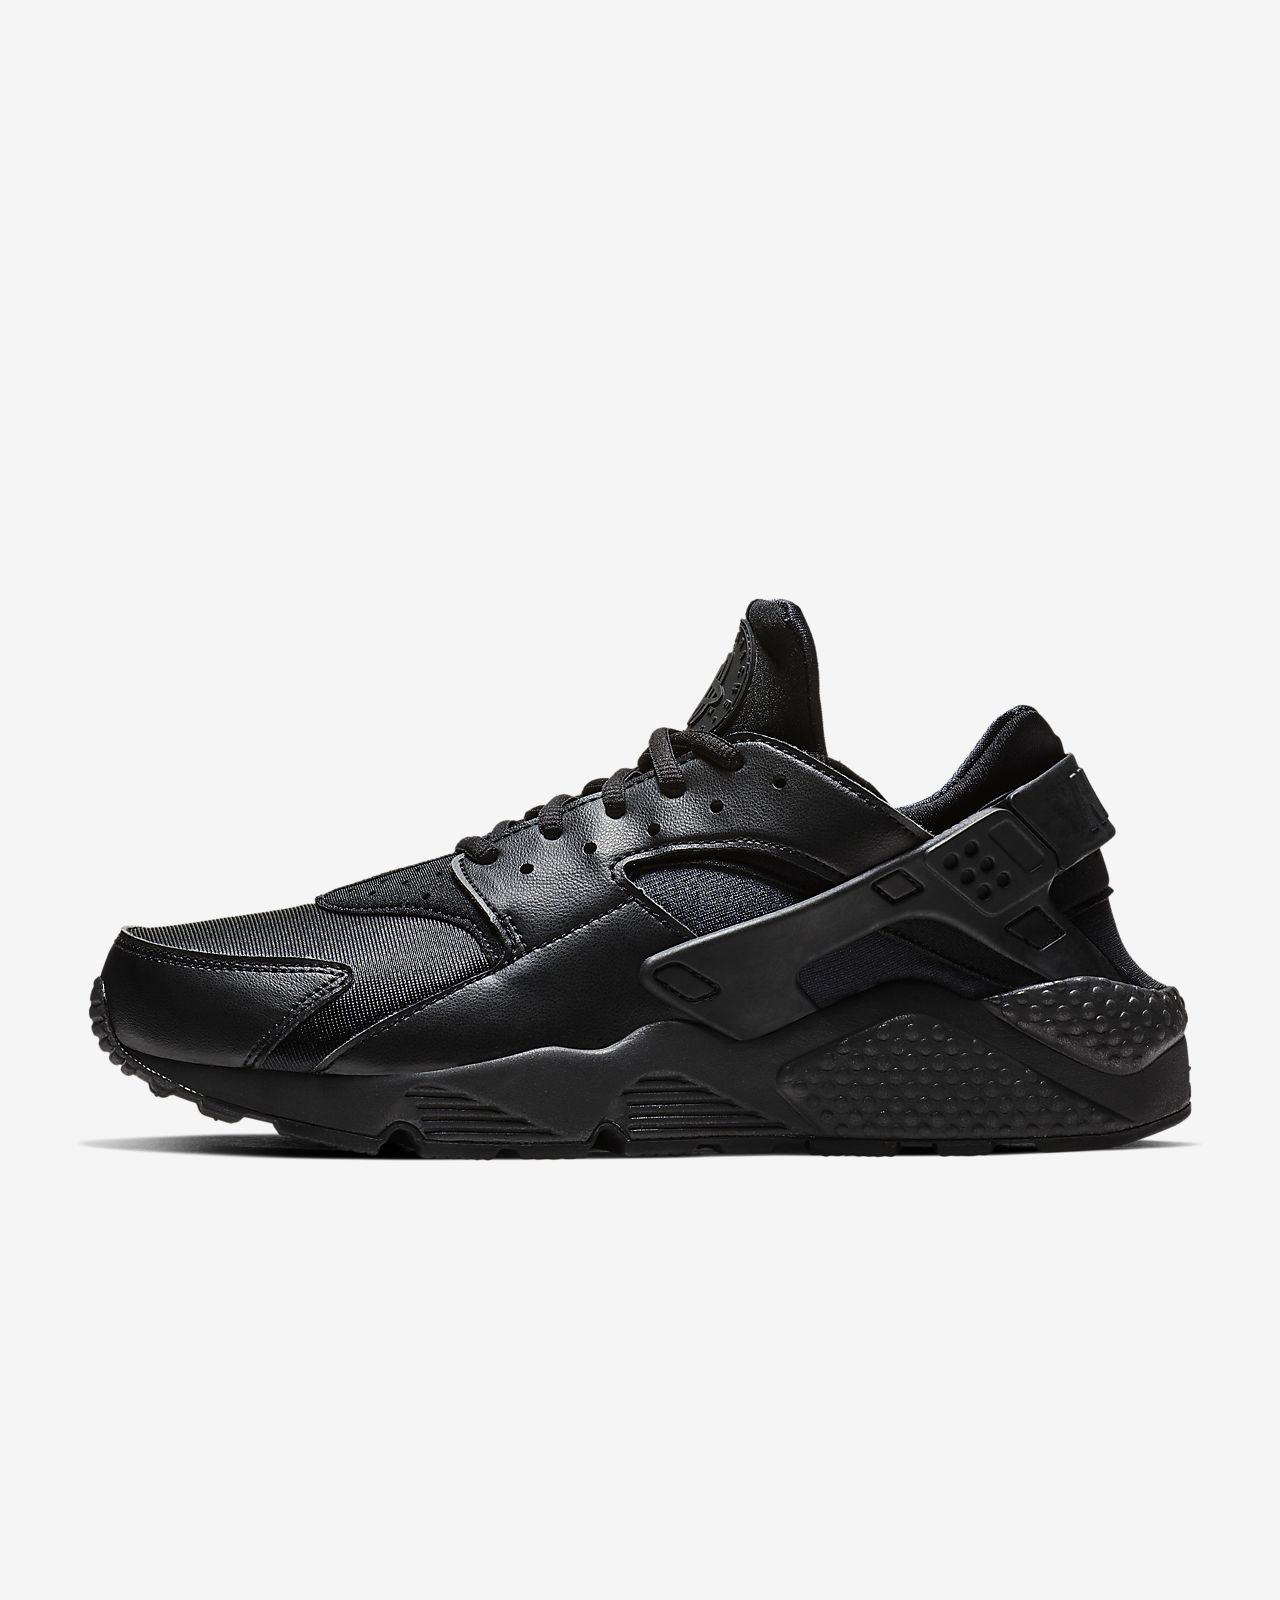 291a2e033372 Nike Air Huarache Women s Shoe. Nike.com